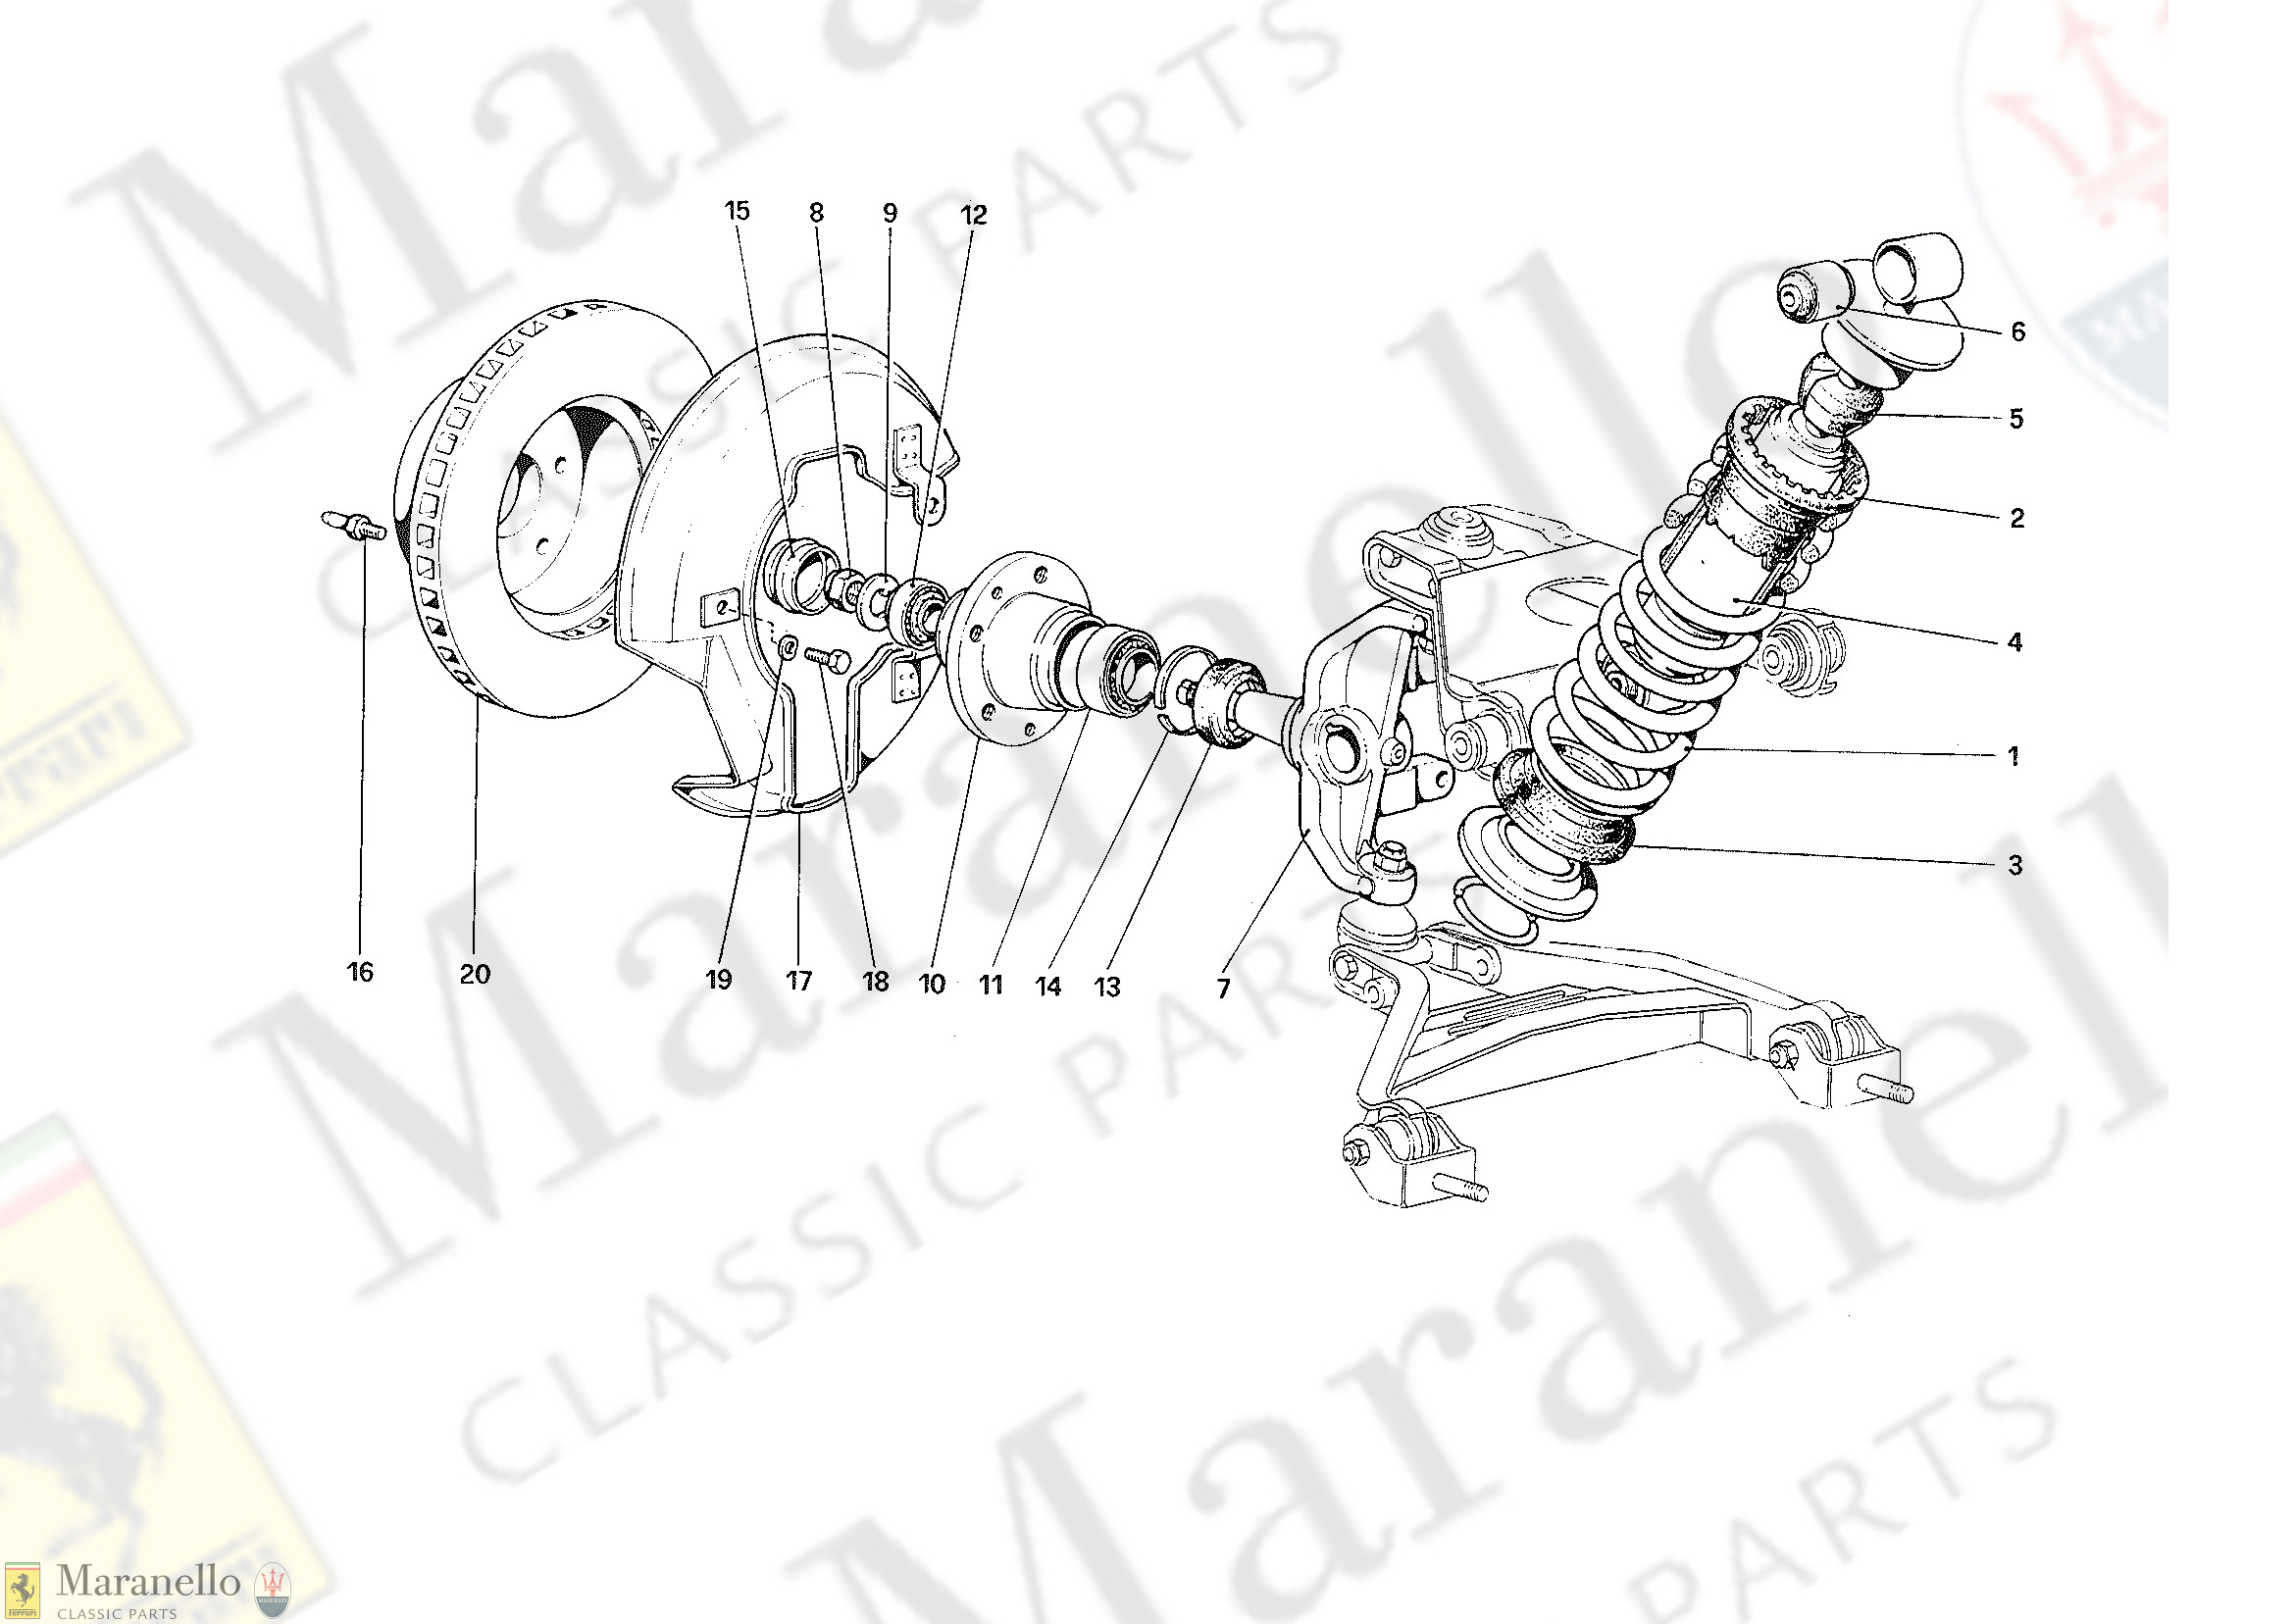 034 - Front Suspension - Shock Absorber and Brake Disc